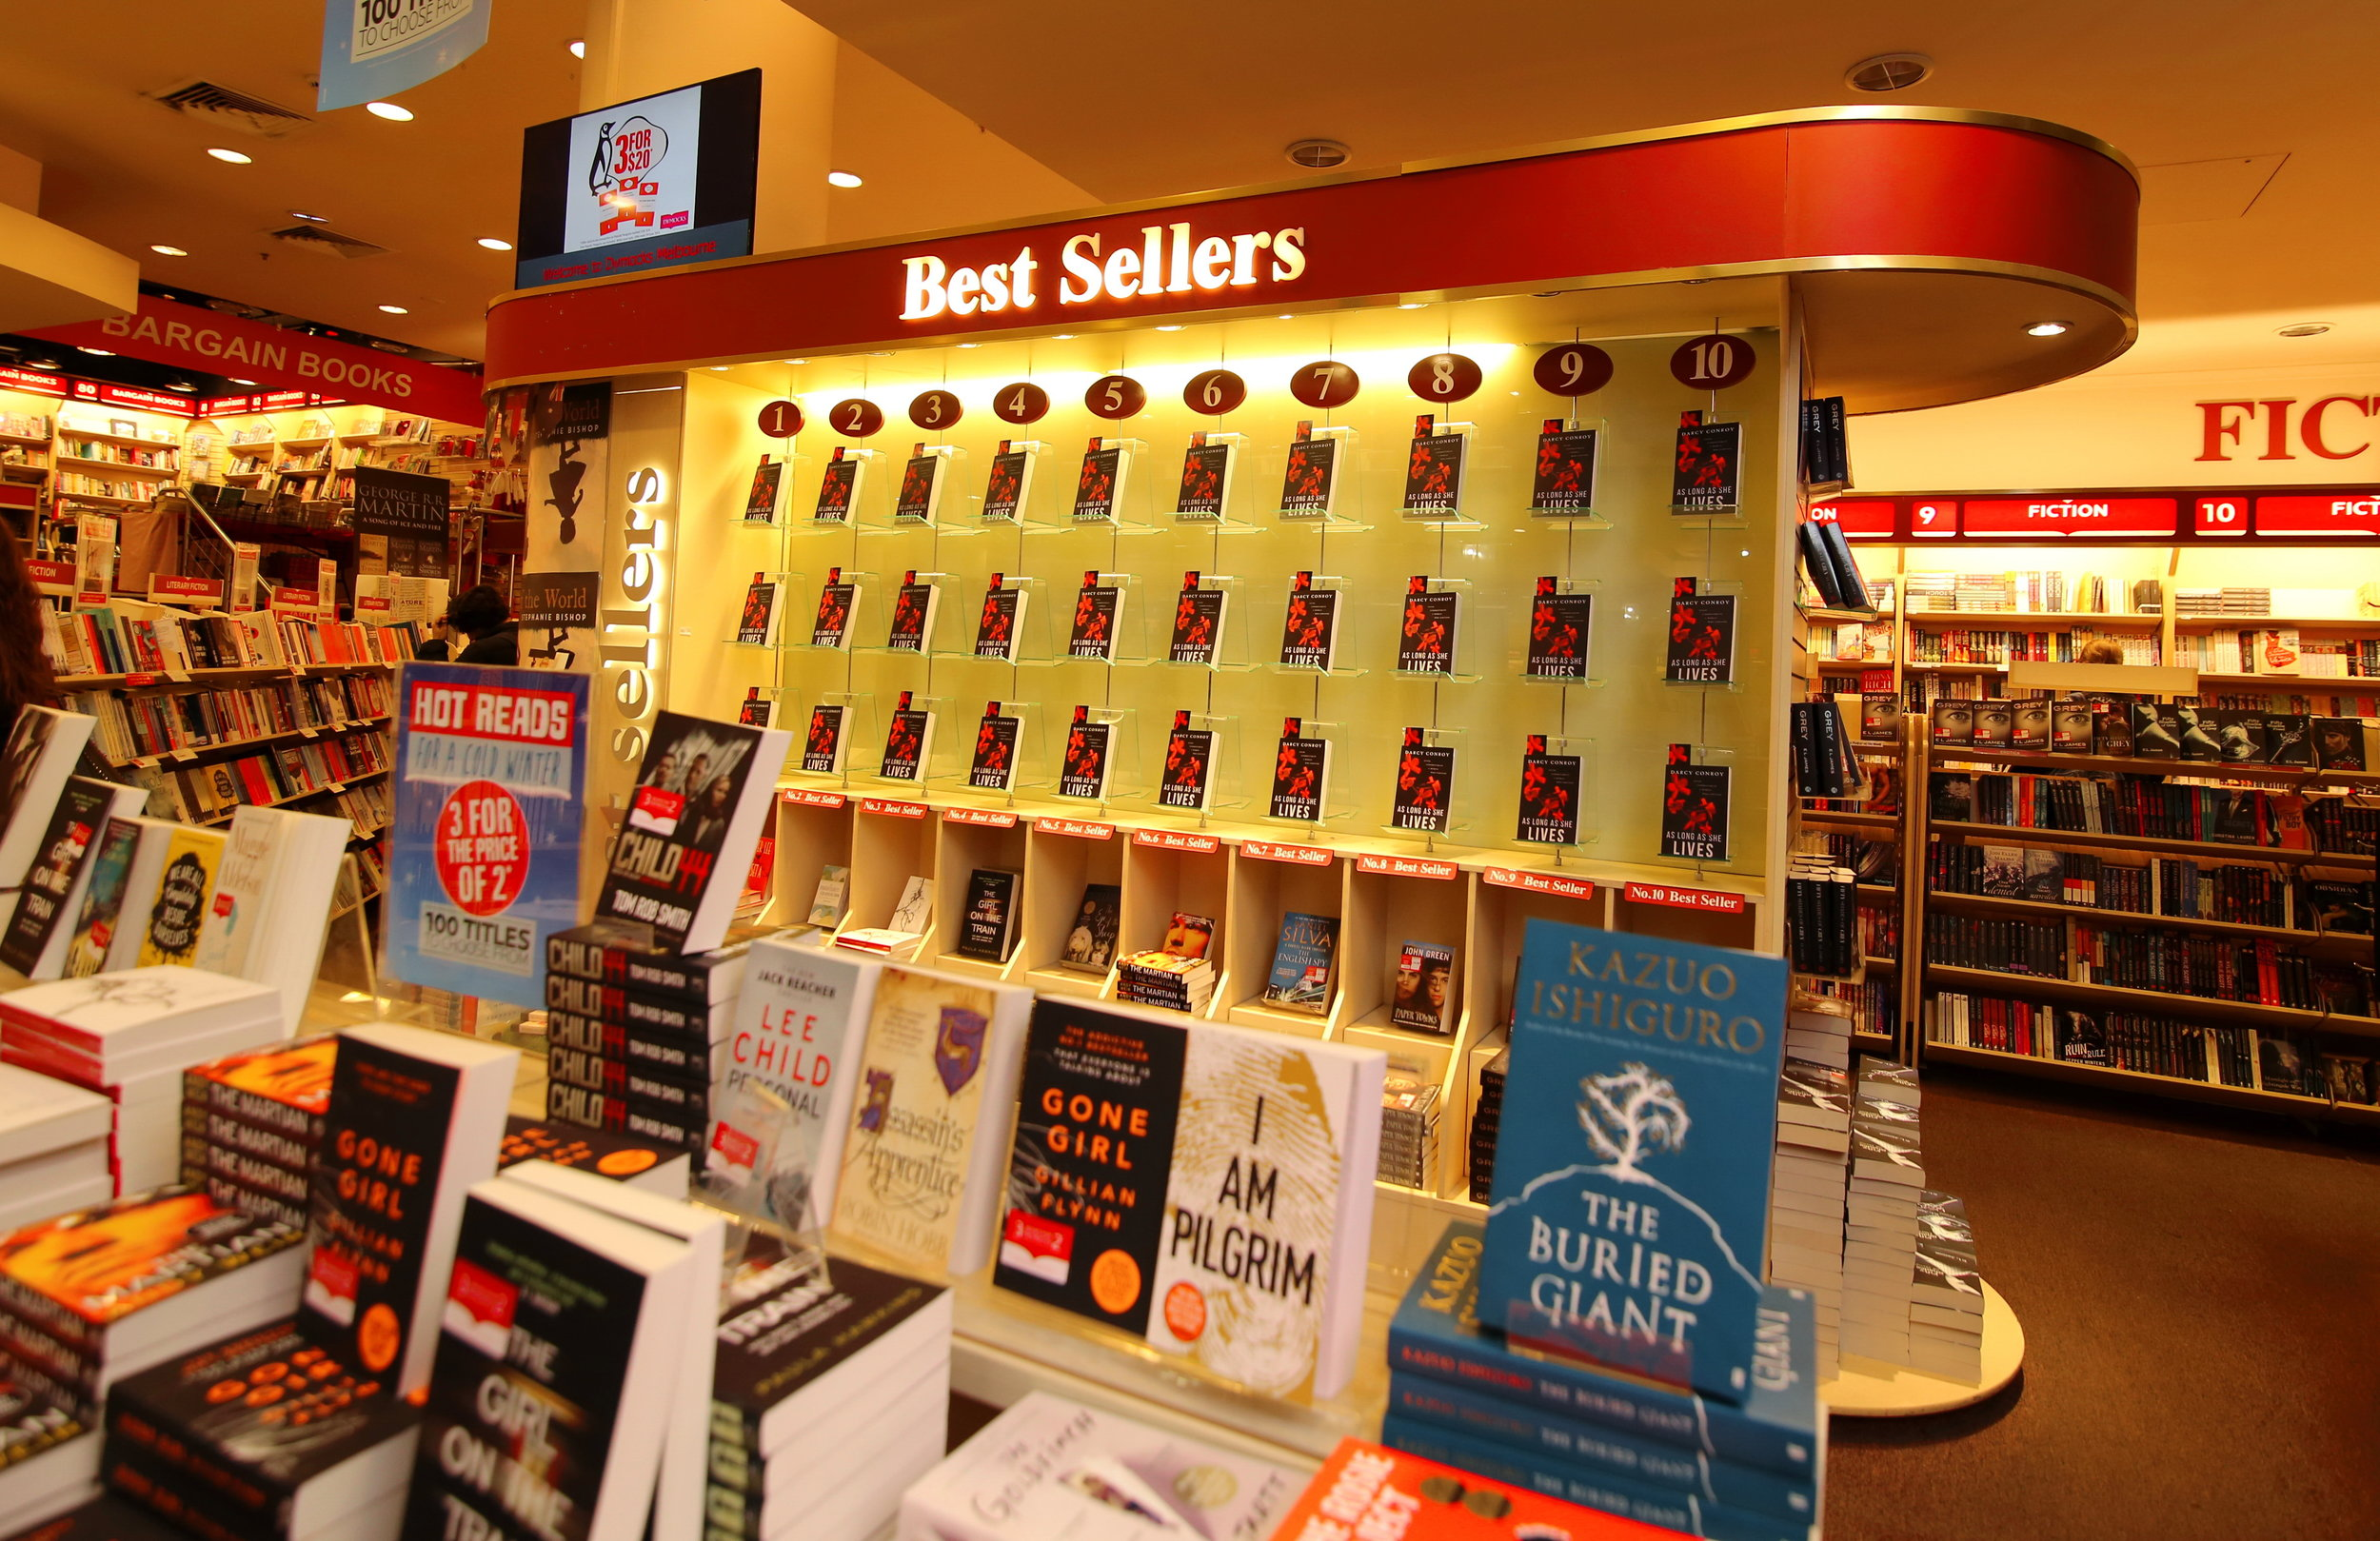 Best-Seller-Wall-1.jpg